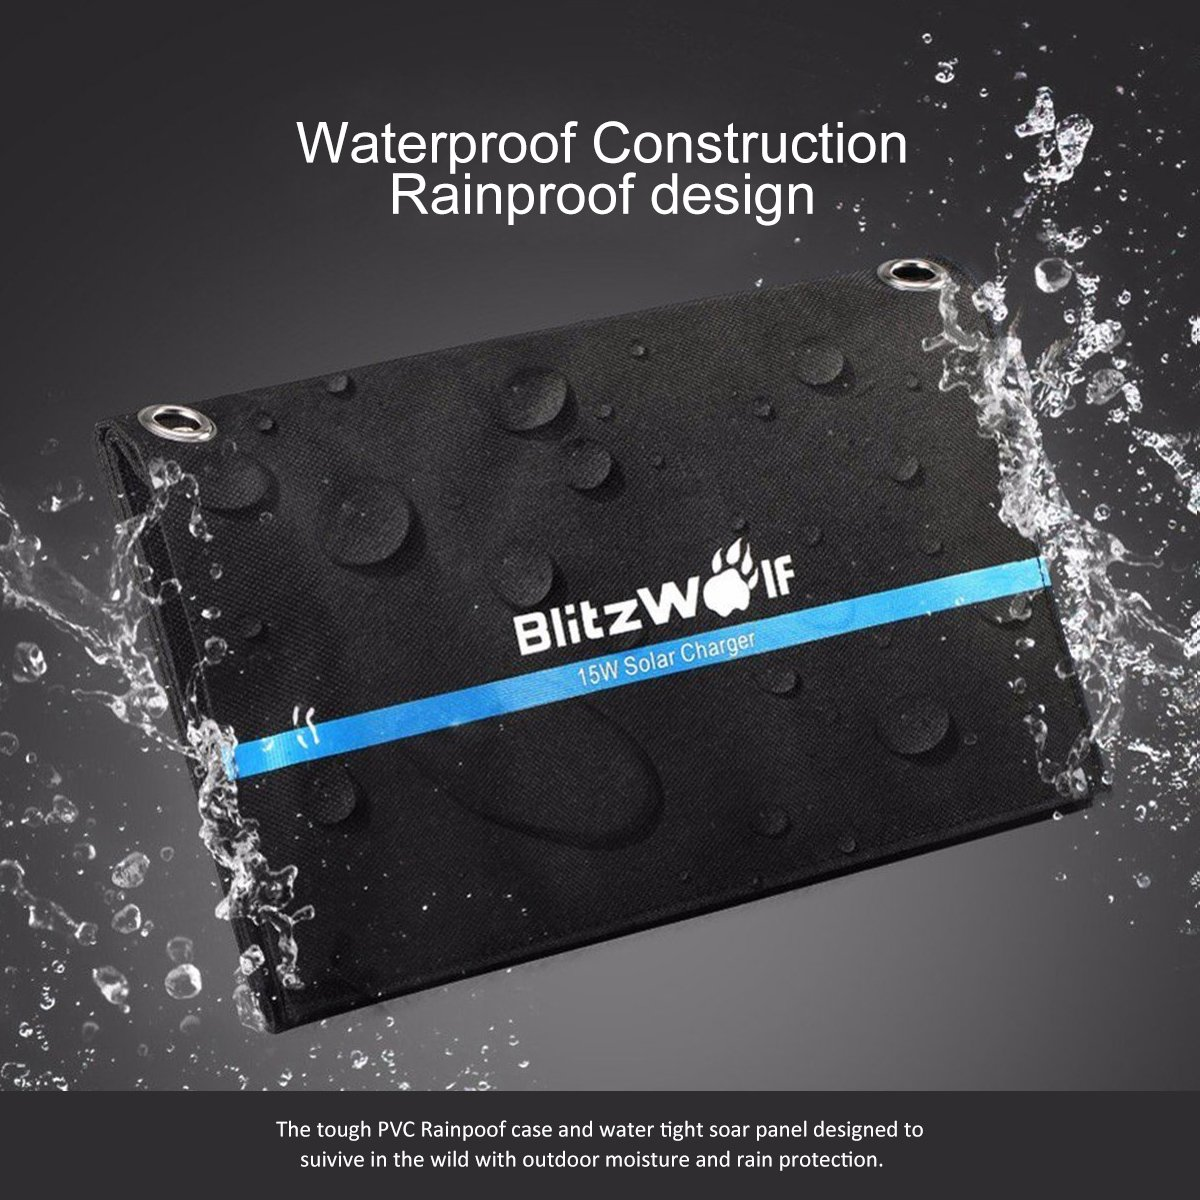 BlitzWolf 15W Solar Charger Portable Dual USB Port for iPhone X 8 Plus 7 6 6s Plus, Samsung Galaxy S8 S7 S6 Edge, Android Powered Foldable Panel Water Resistant High-Efficiency SunPower Charger by BlitzWolf (Image #3)